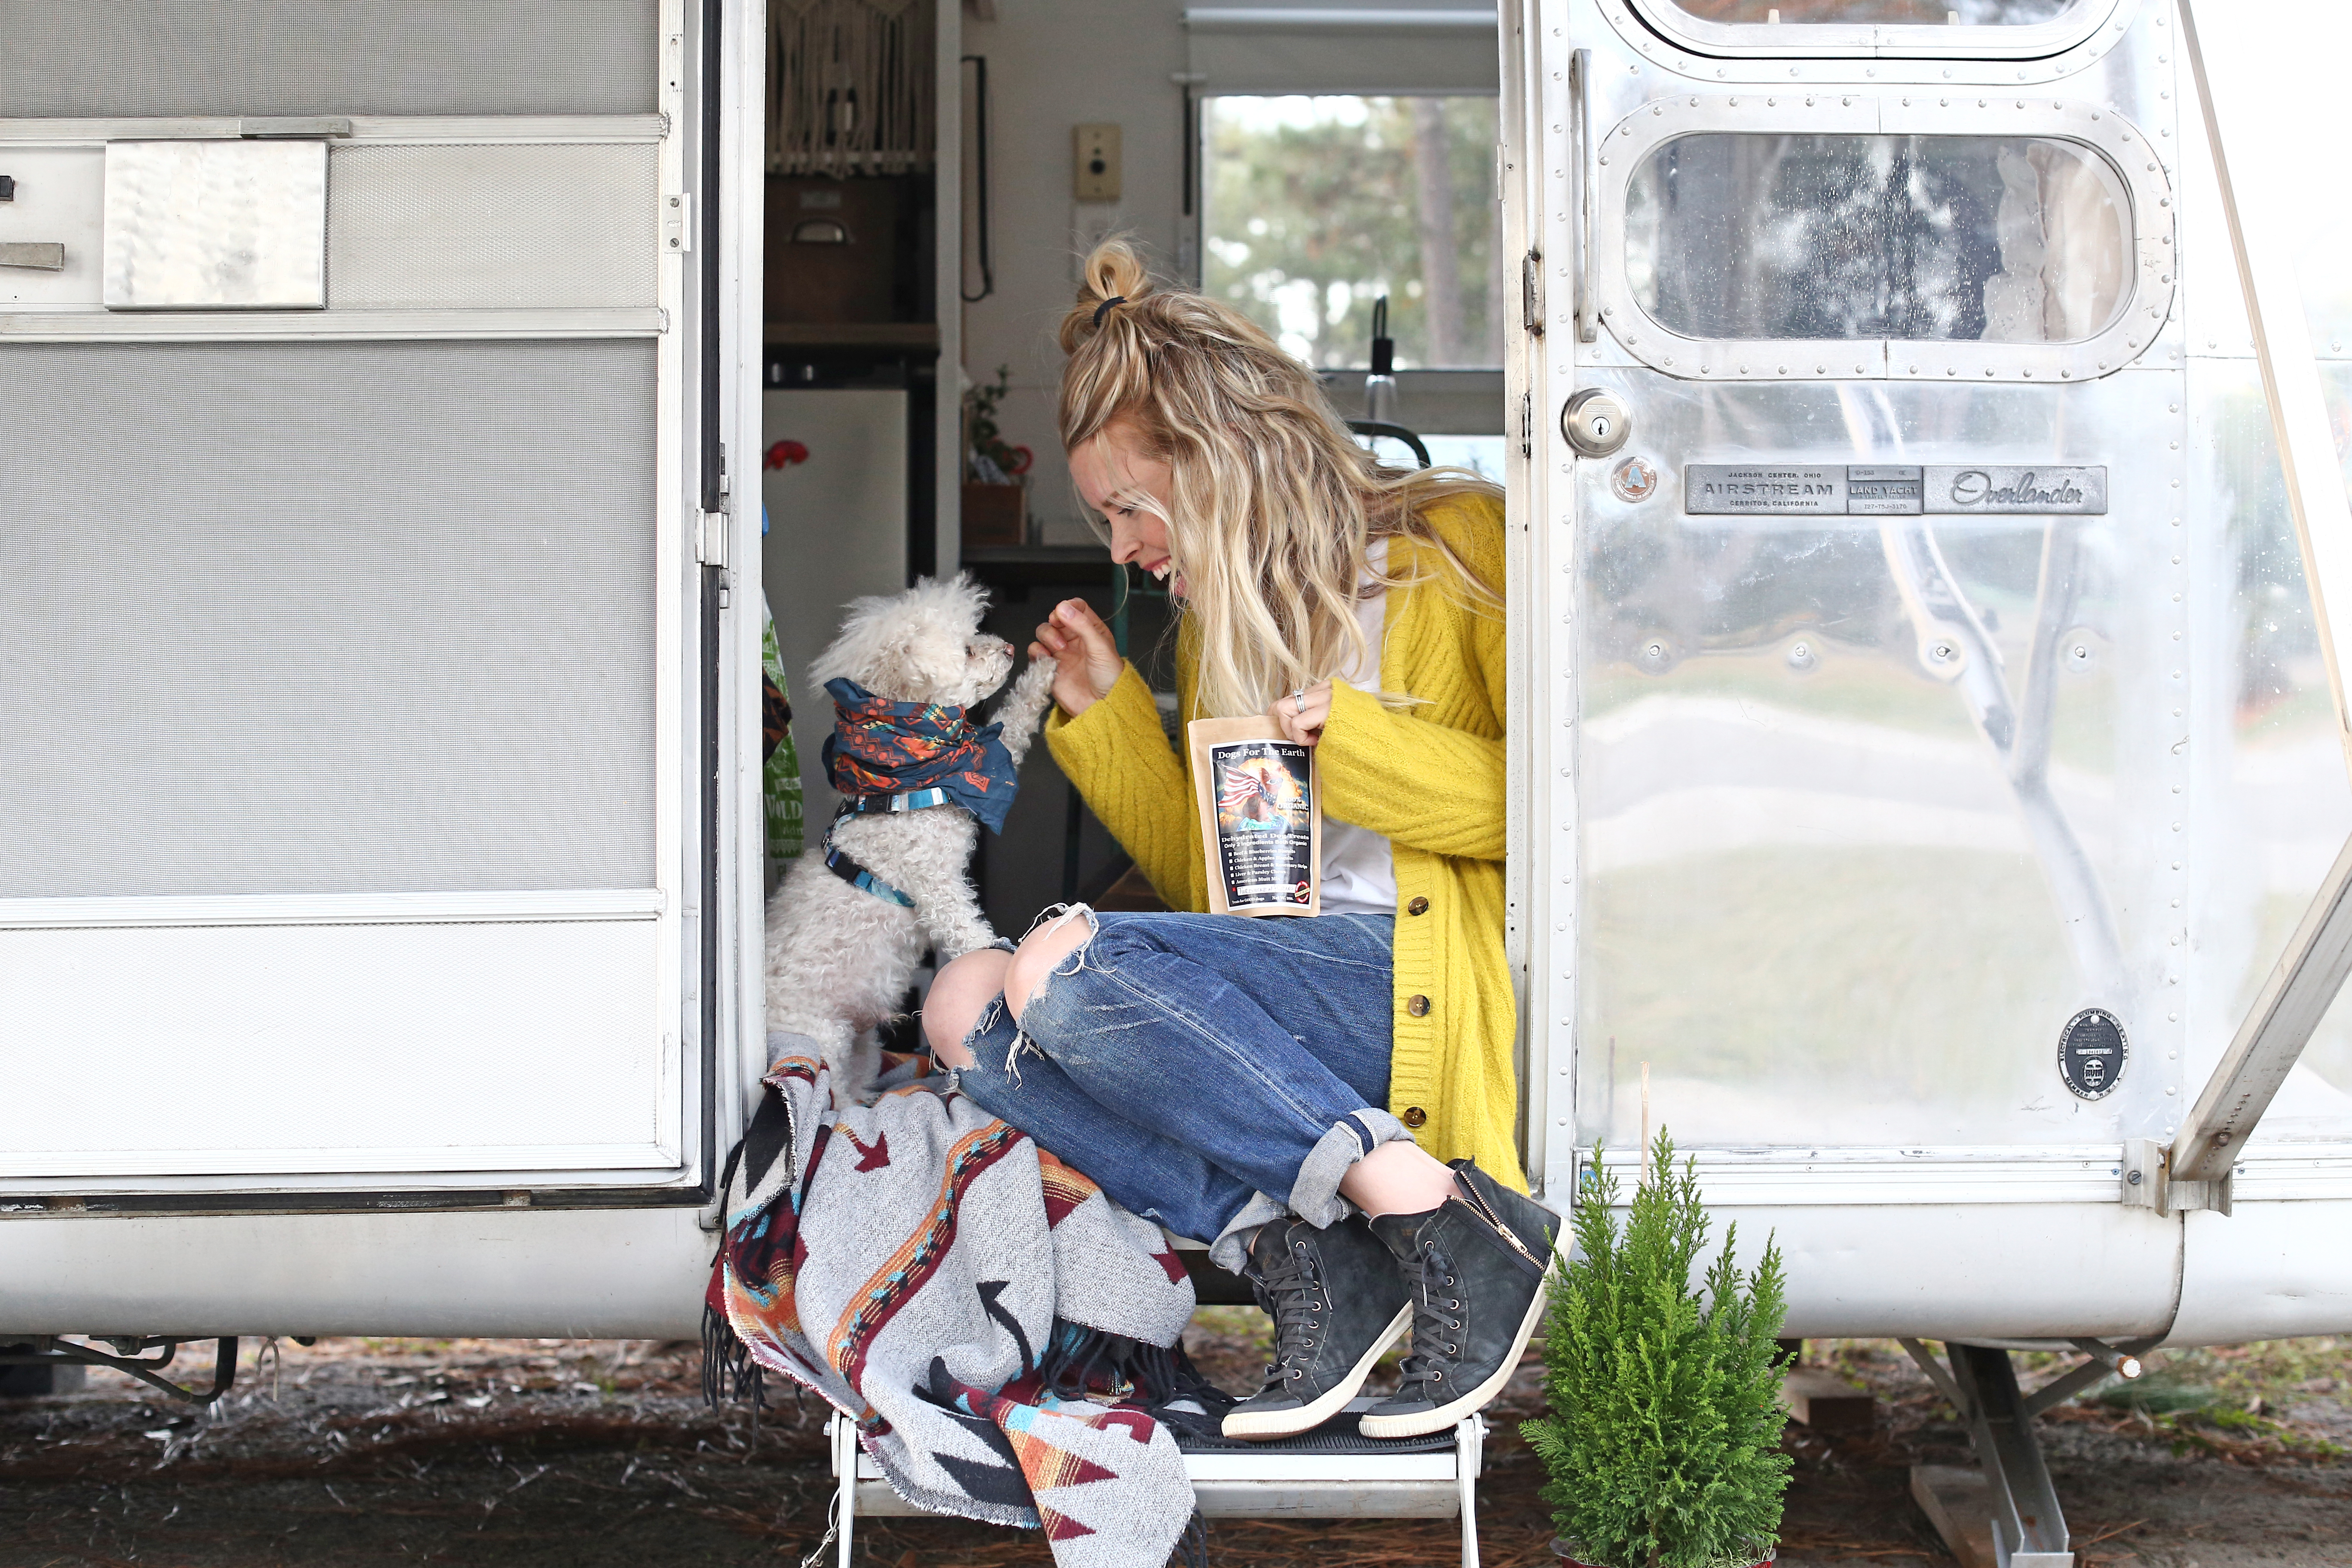 House Tour: An Updated & Remodeled Airstream Trailer